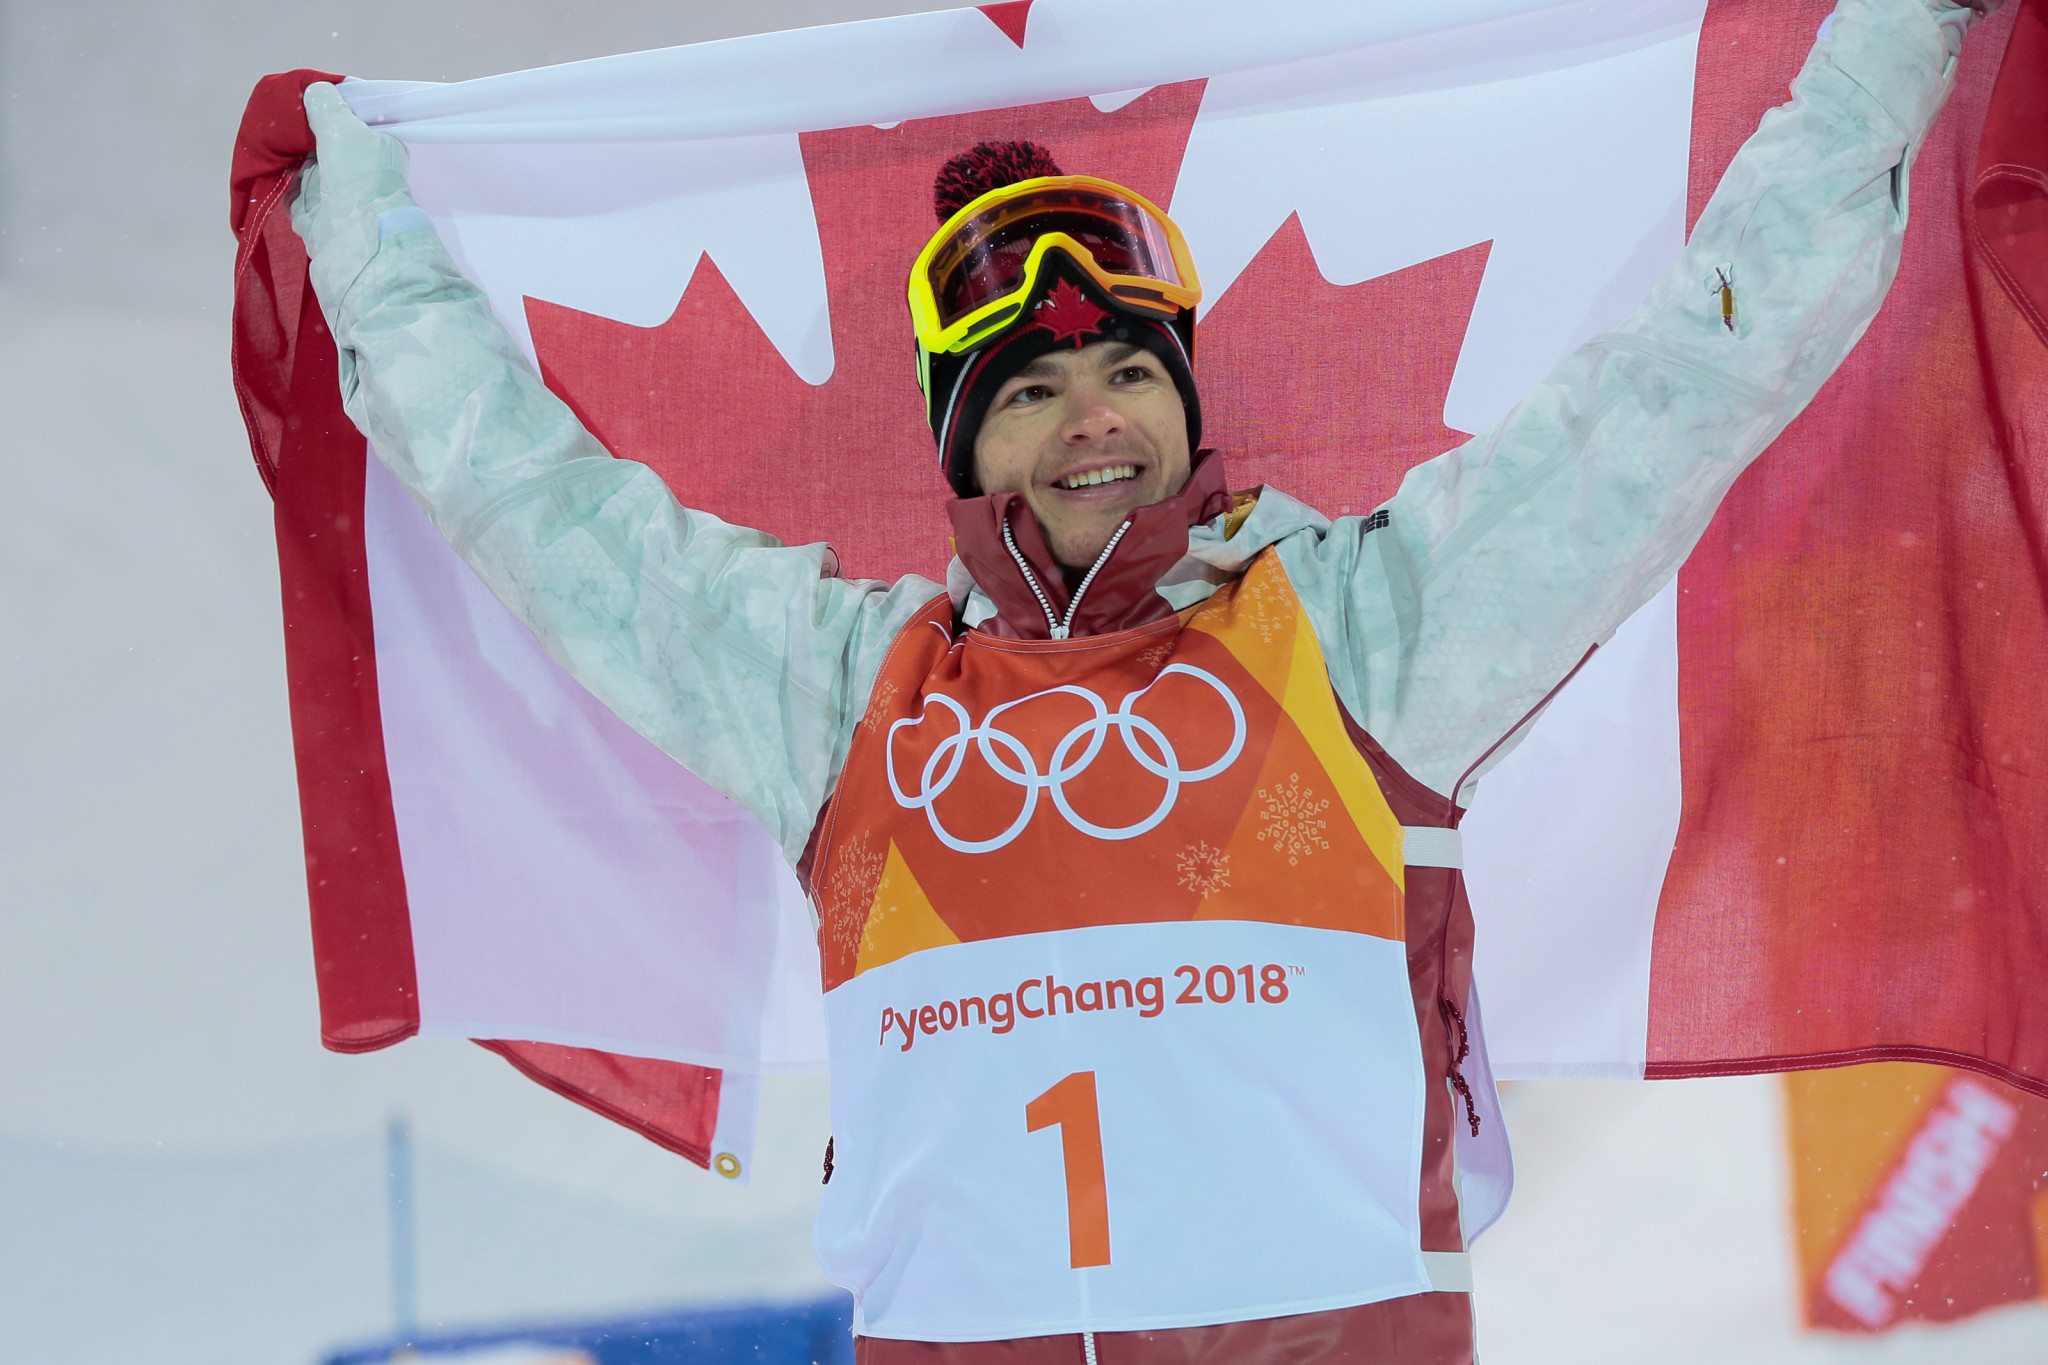 Kingsbury ends long wait for Olympic gold medal with moguls triumph at Pyeongchang 2018